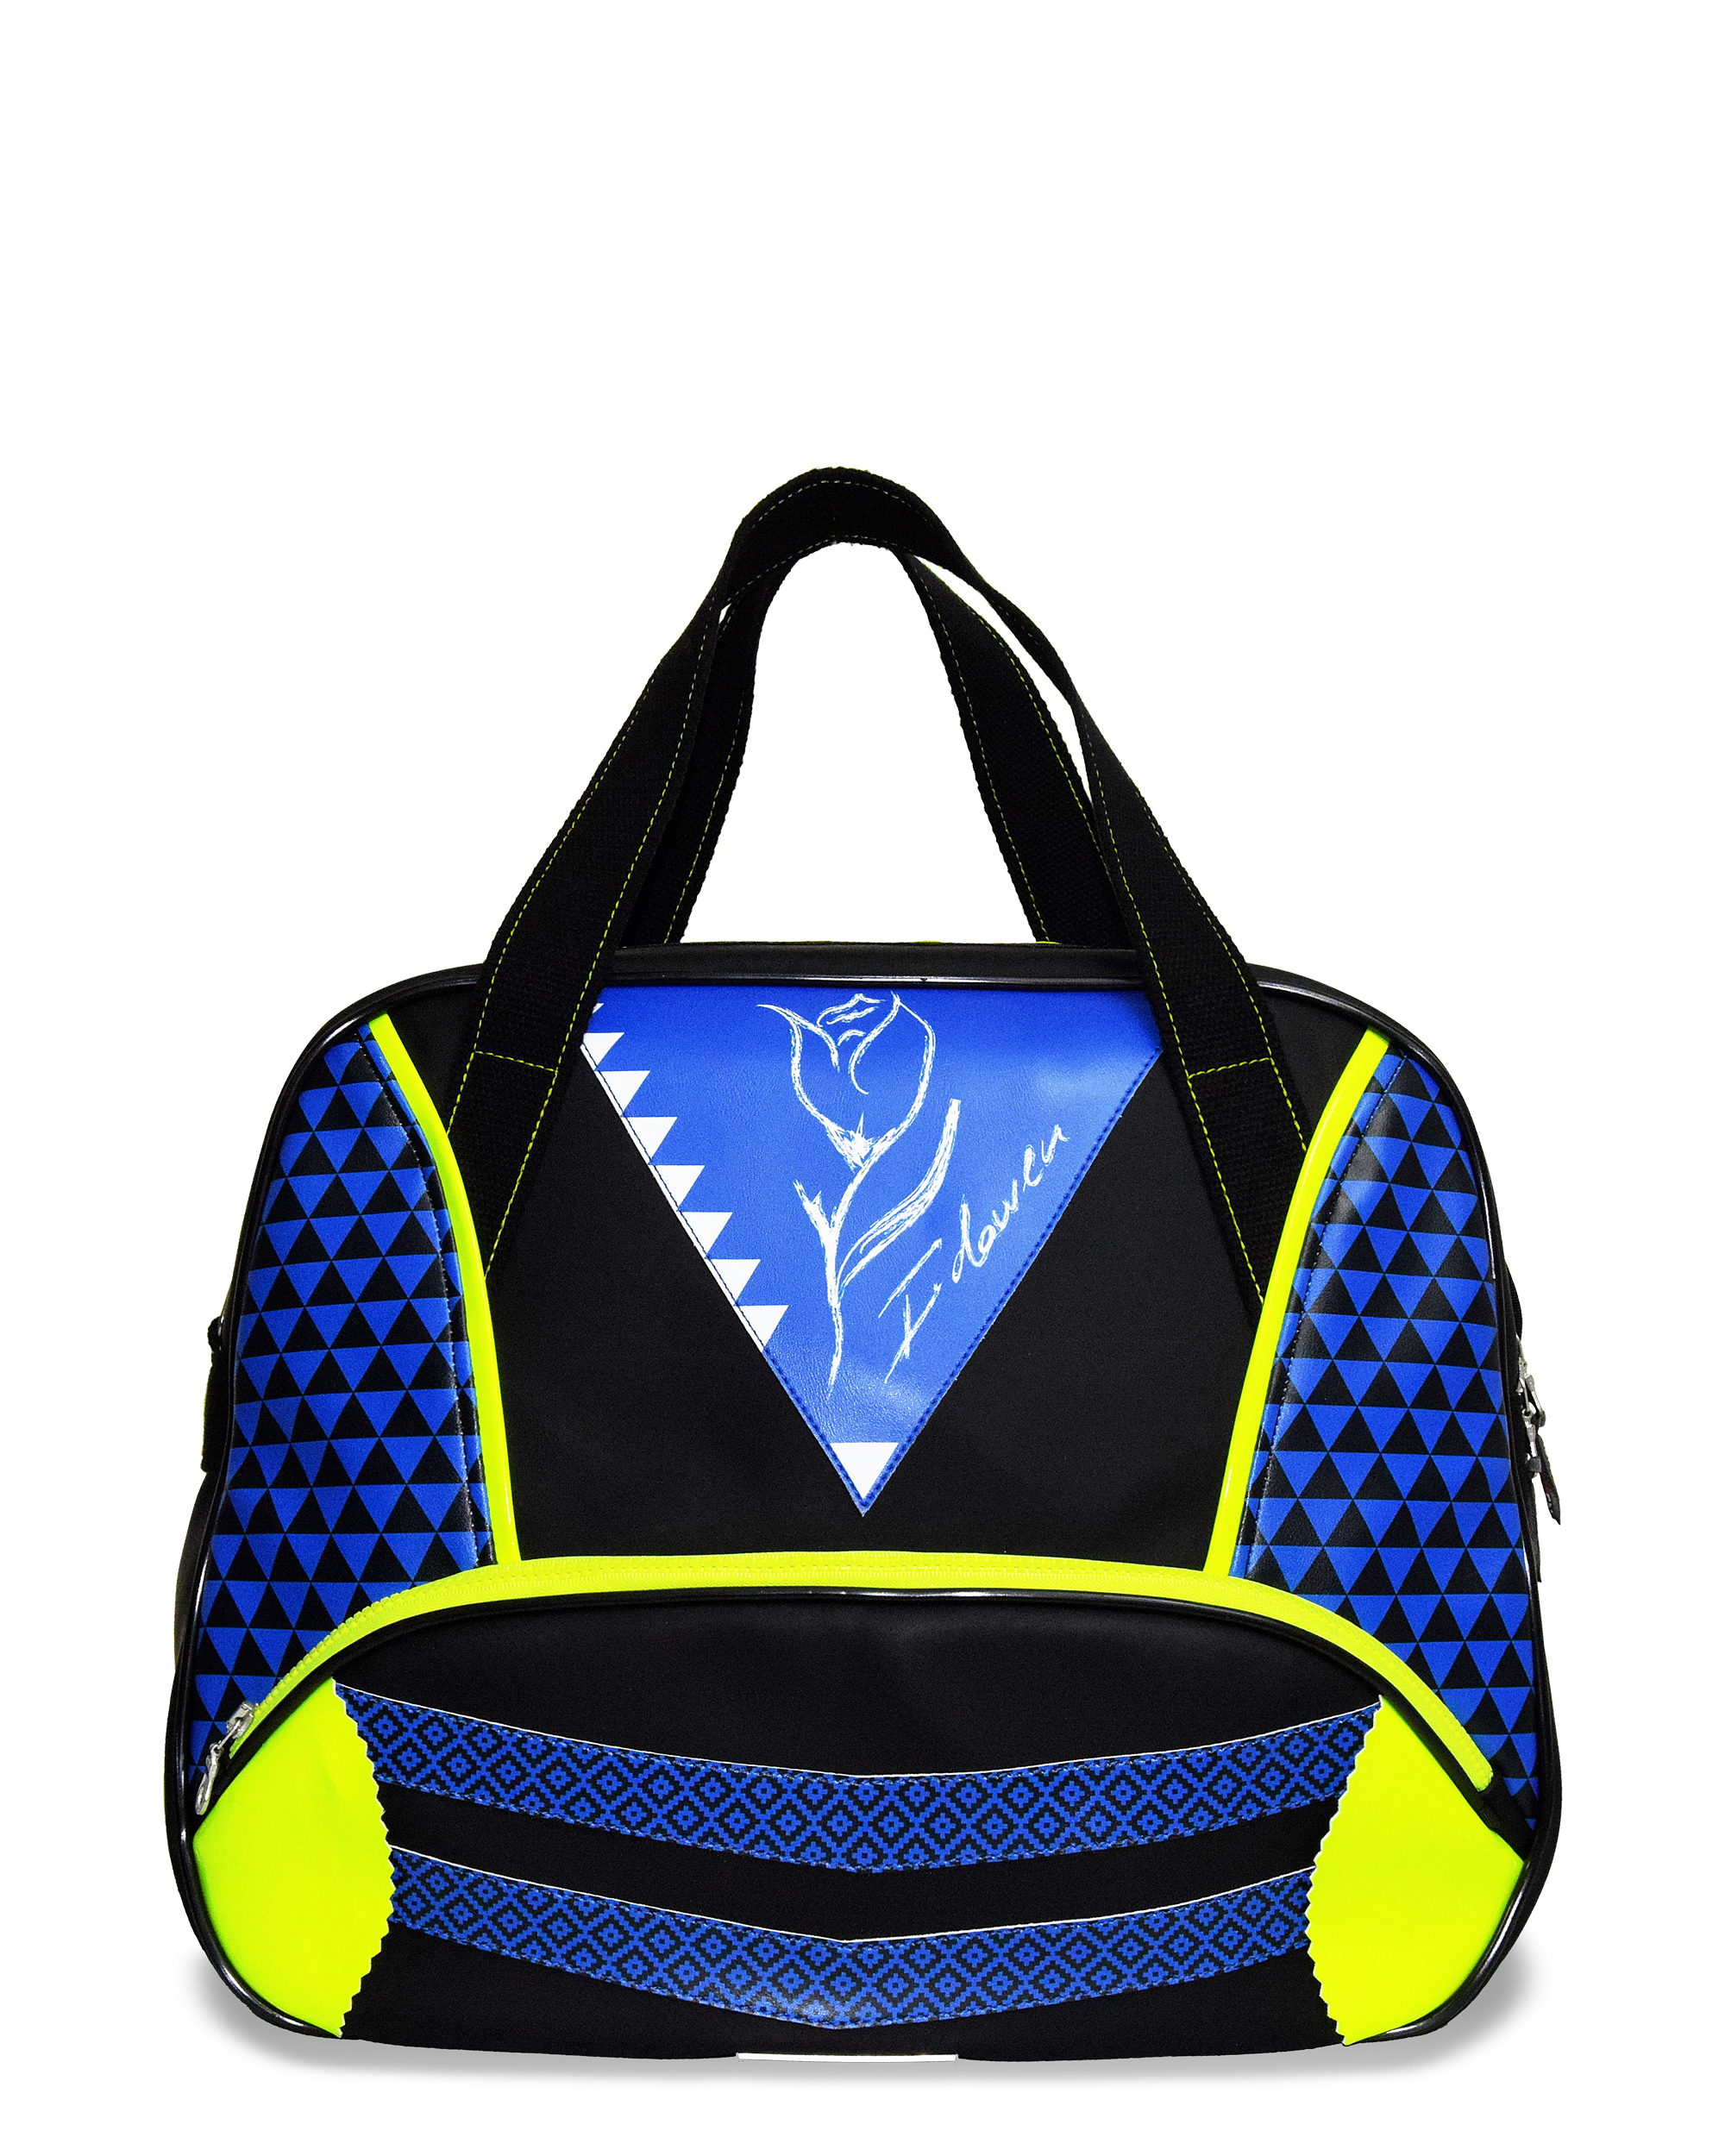 WOMEN'S SPORTS BAGS - GYM BAGS - IDAWEN fashion Athleisure